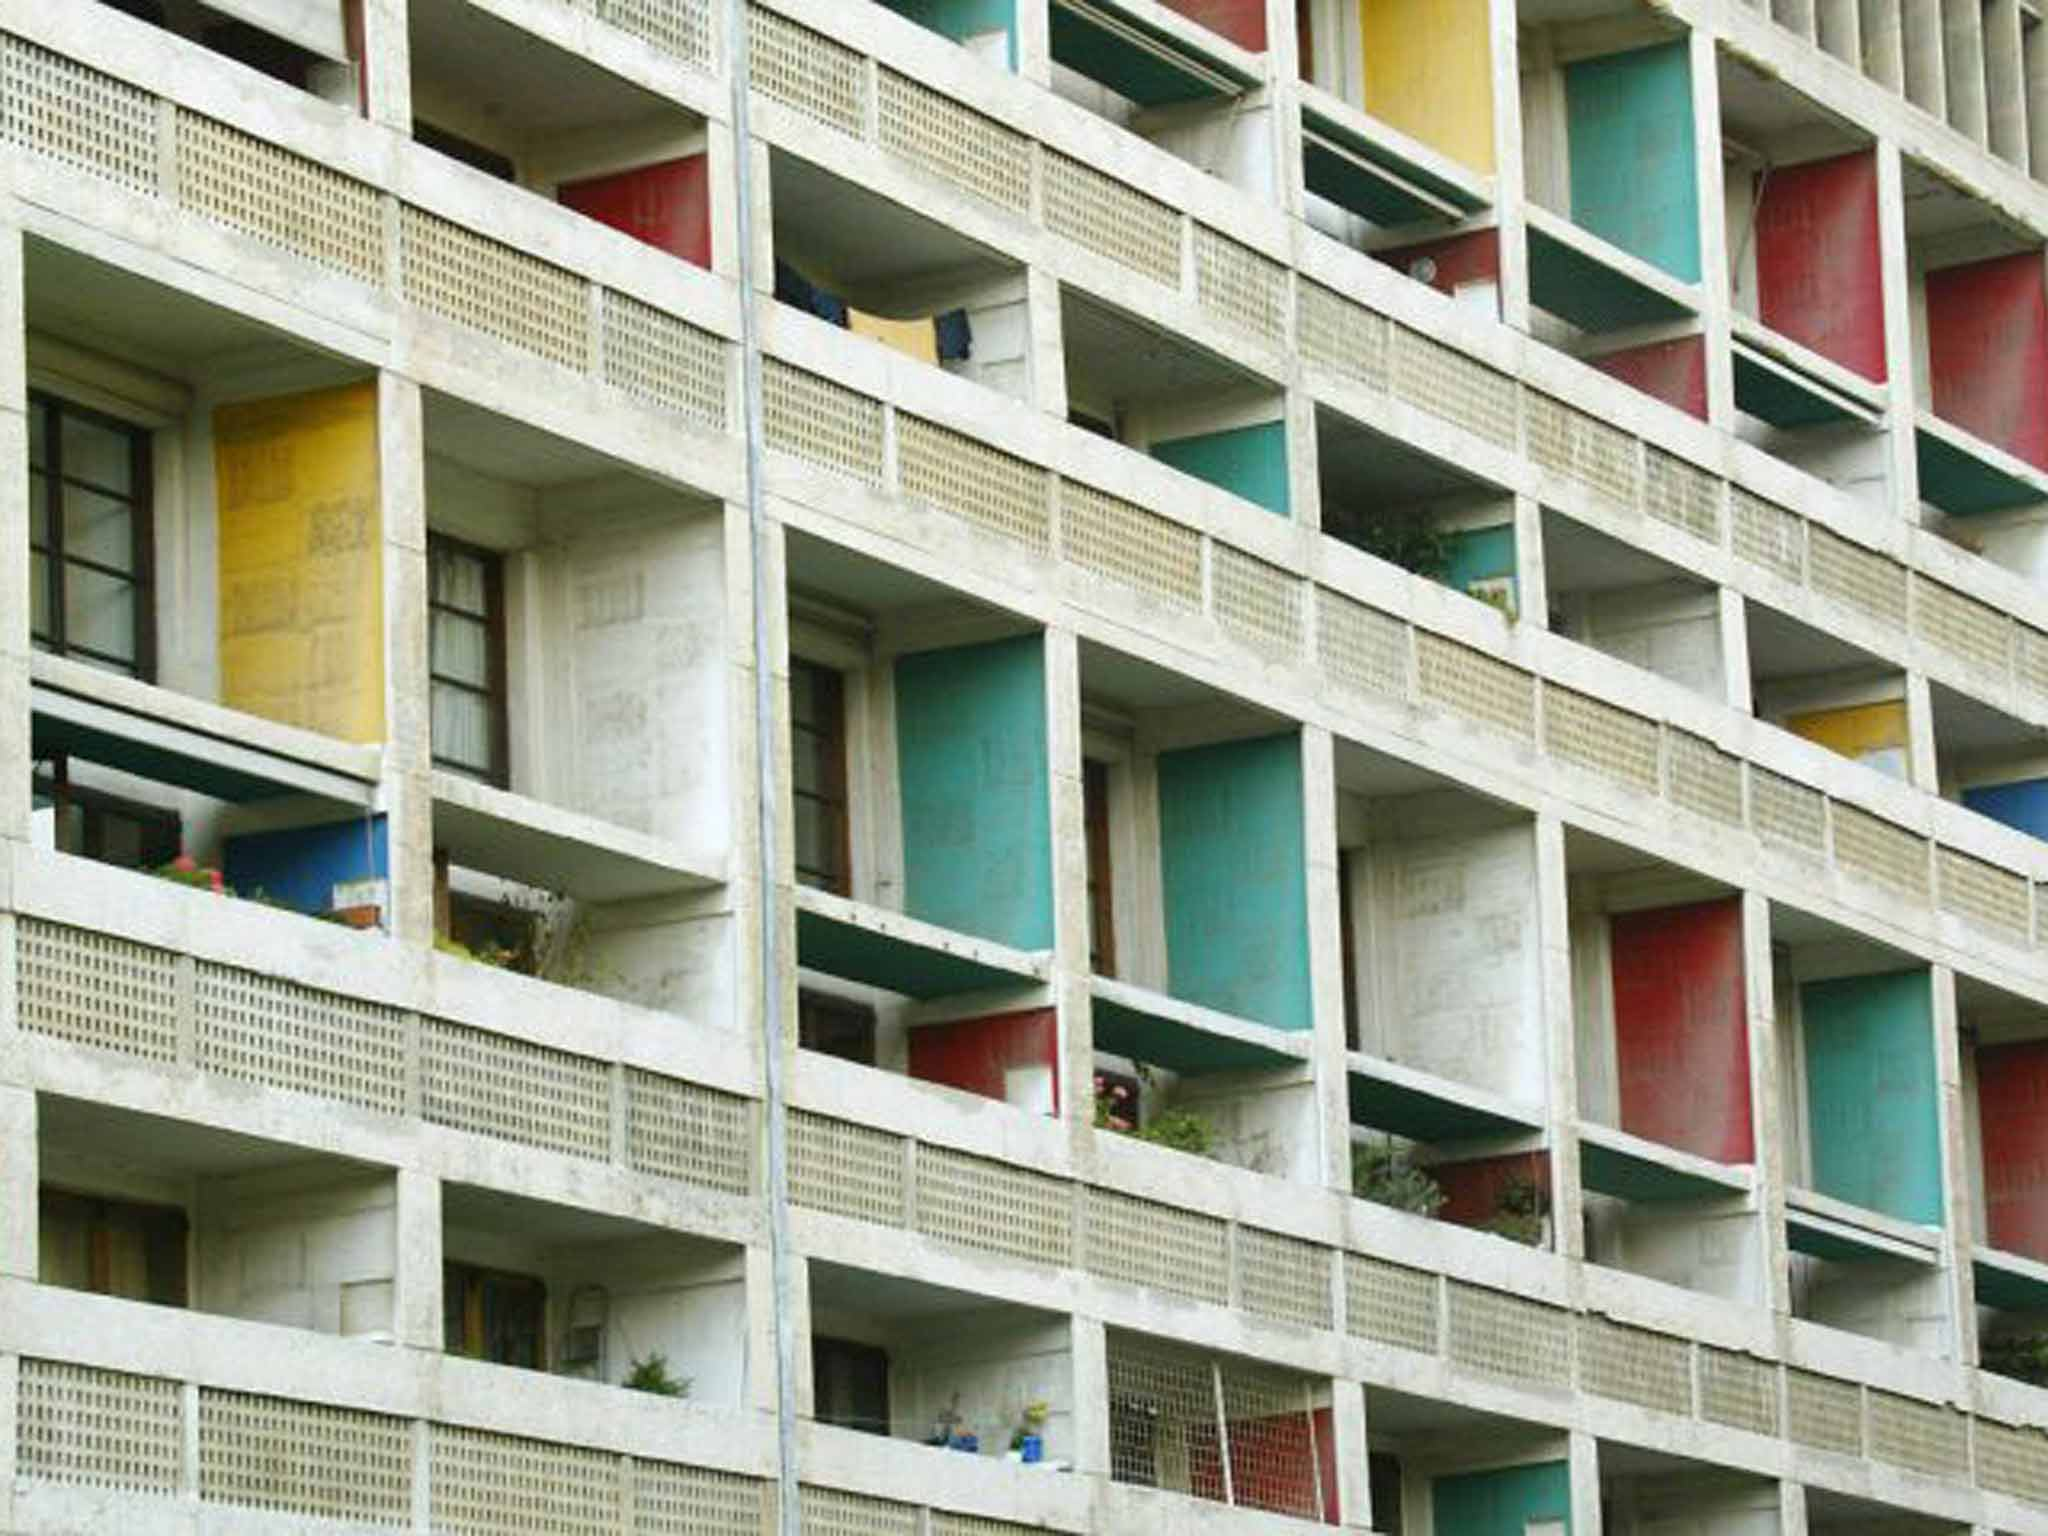 Le Corbusier Unite D Habitation le corbusier in france: on the trail of a controversial